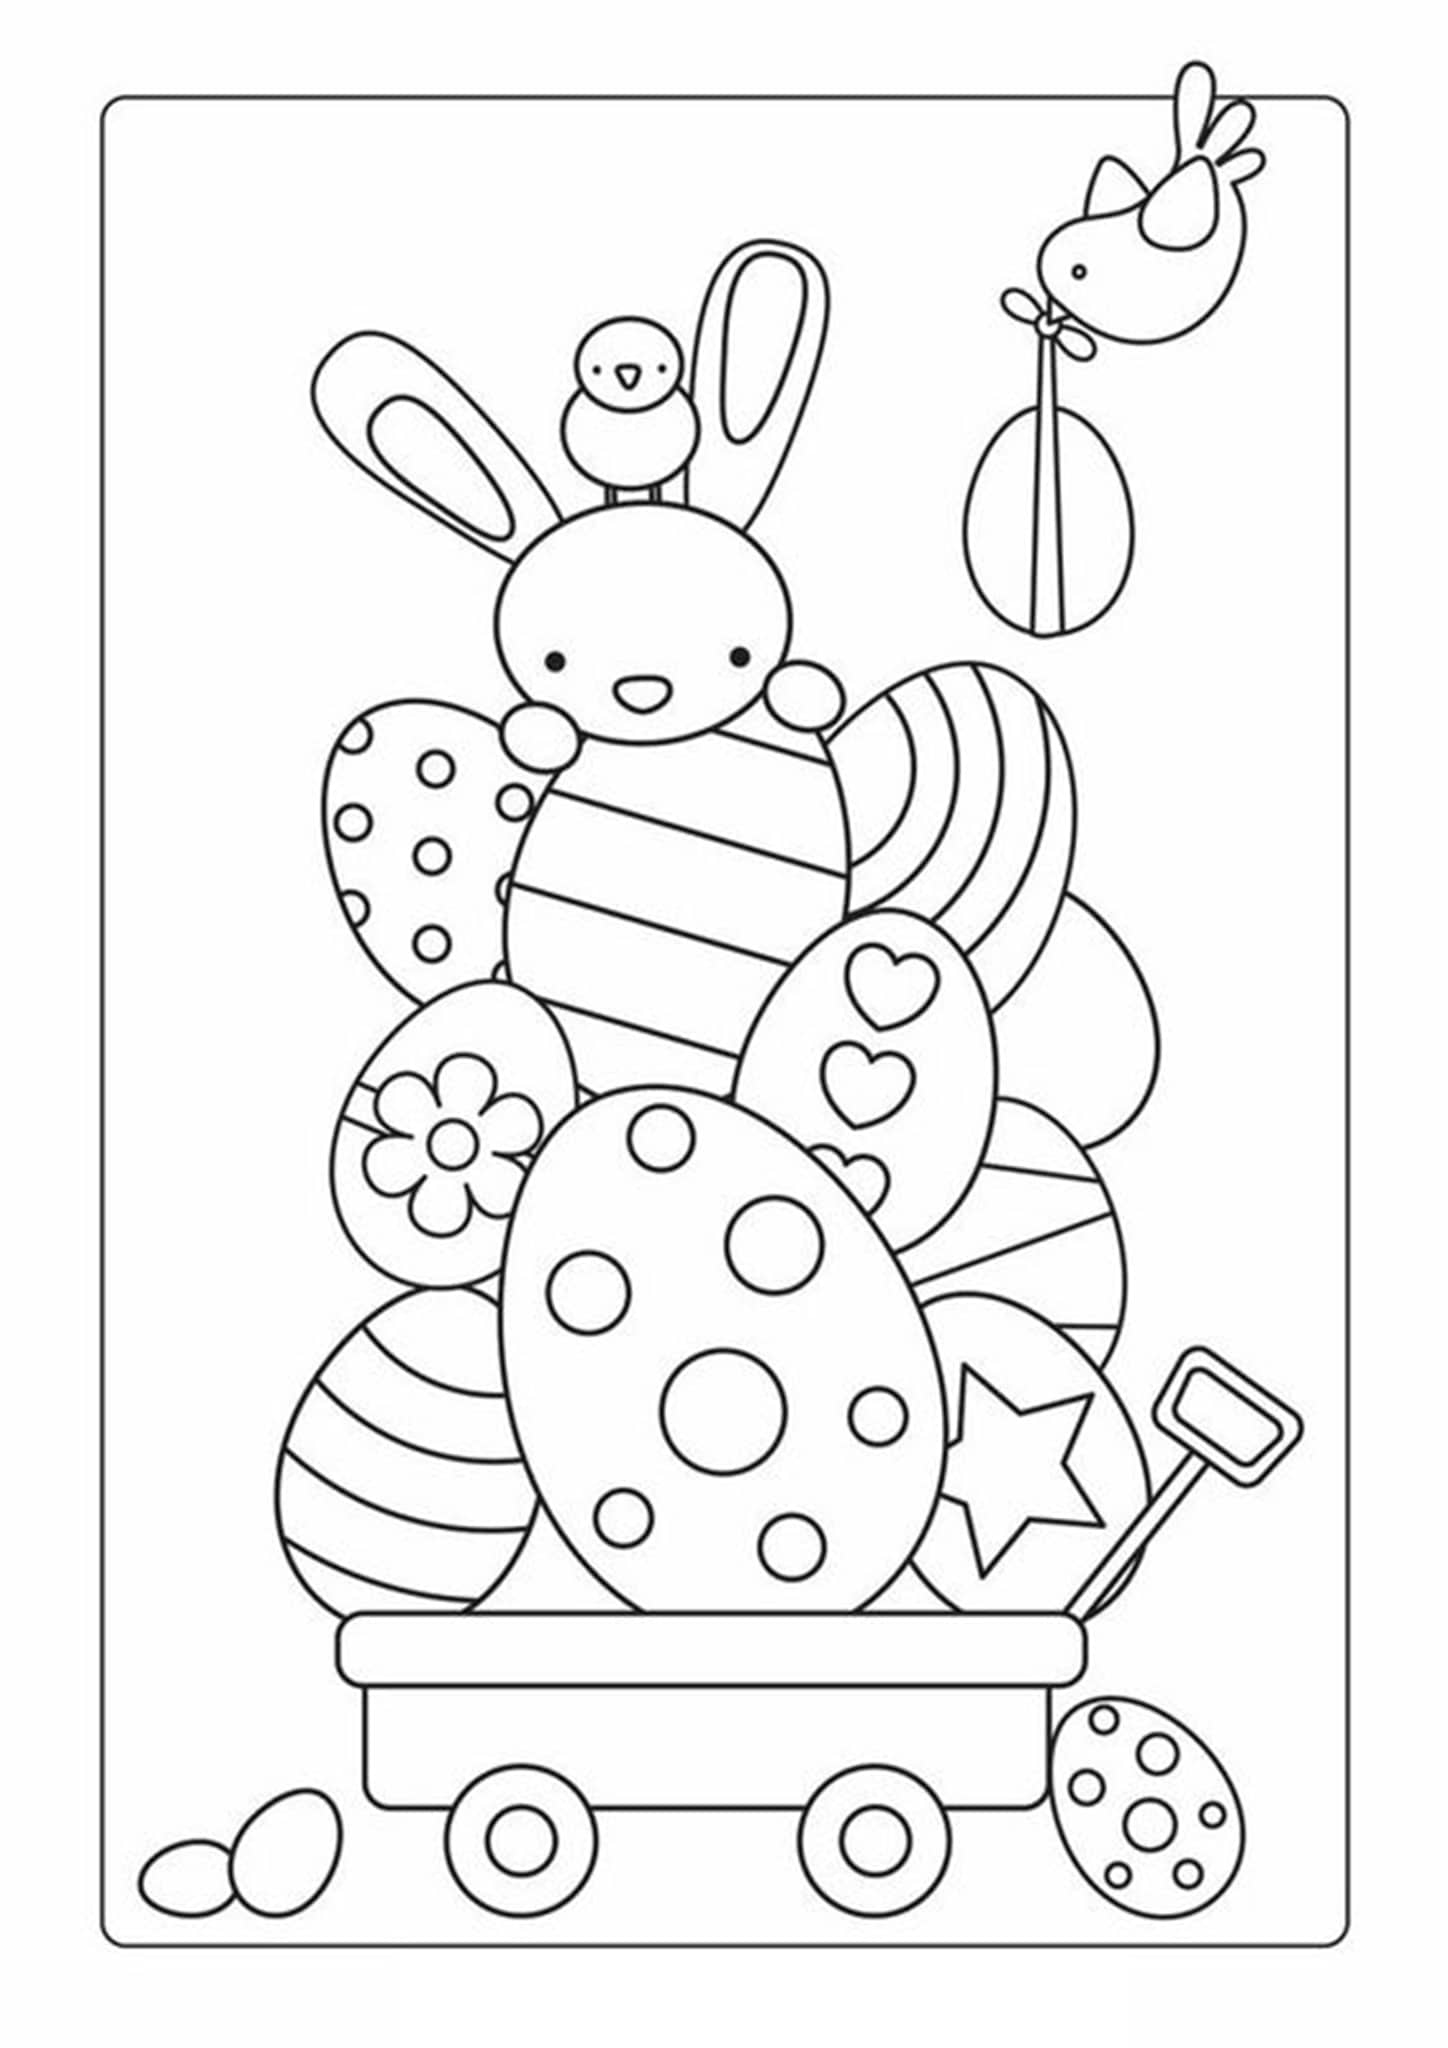 coloring kids rabbit free printable rabbit coloring pages for kids coloring kids rabbit 1 1